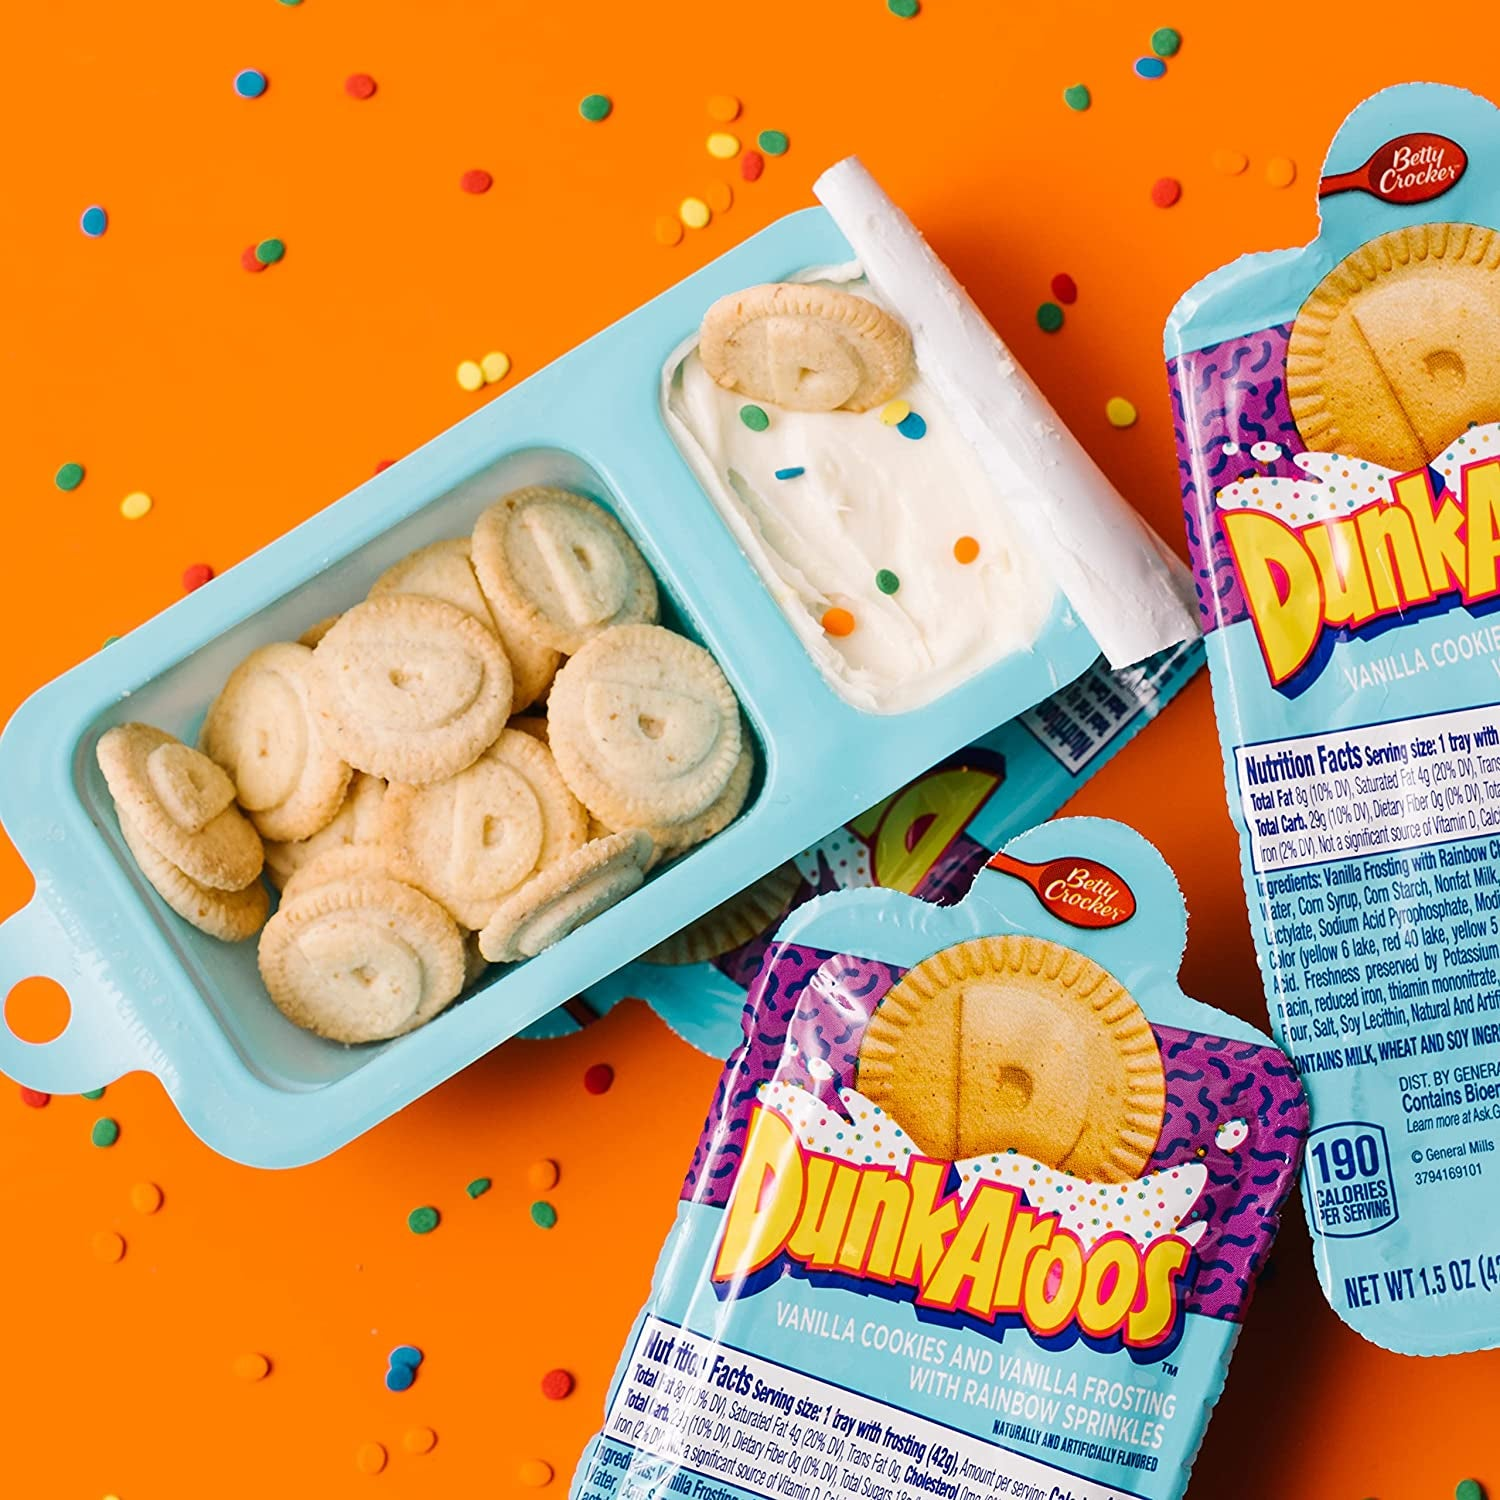 A snack pack with one section for small round cookies and another for frosting